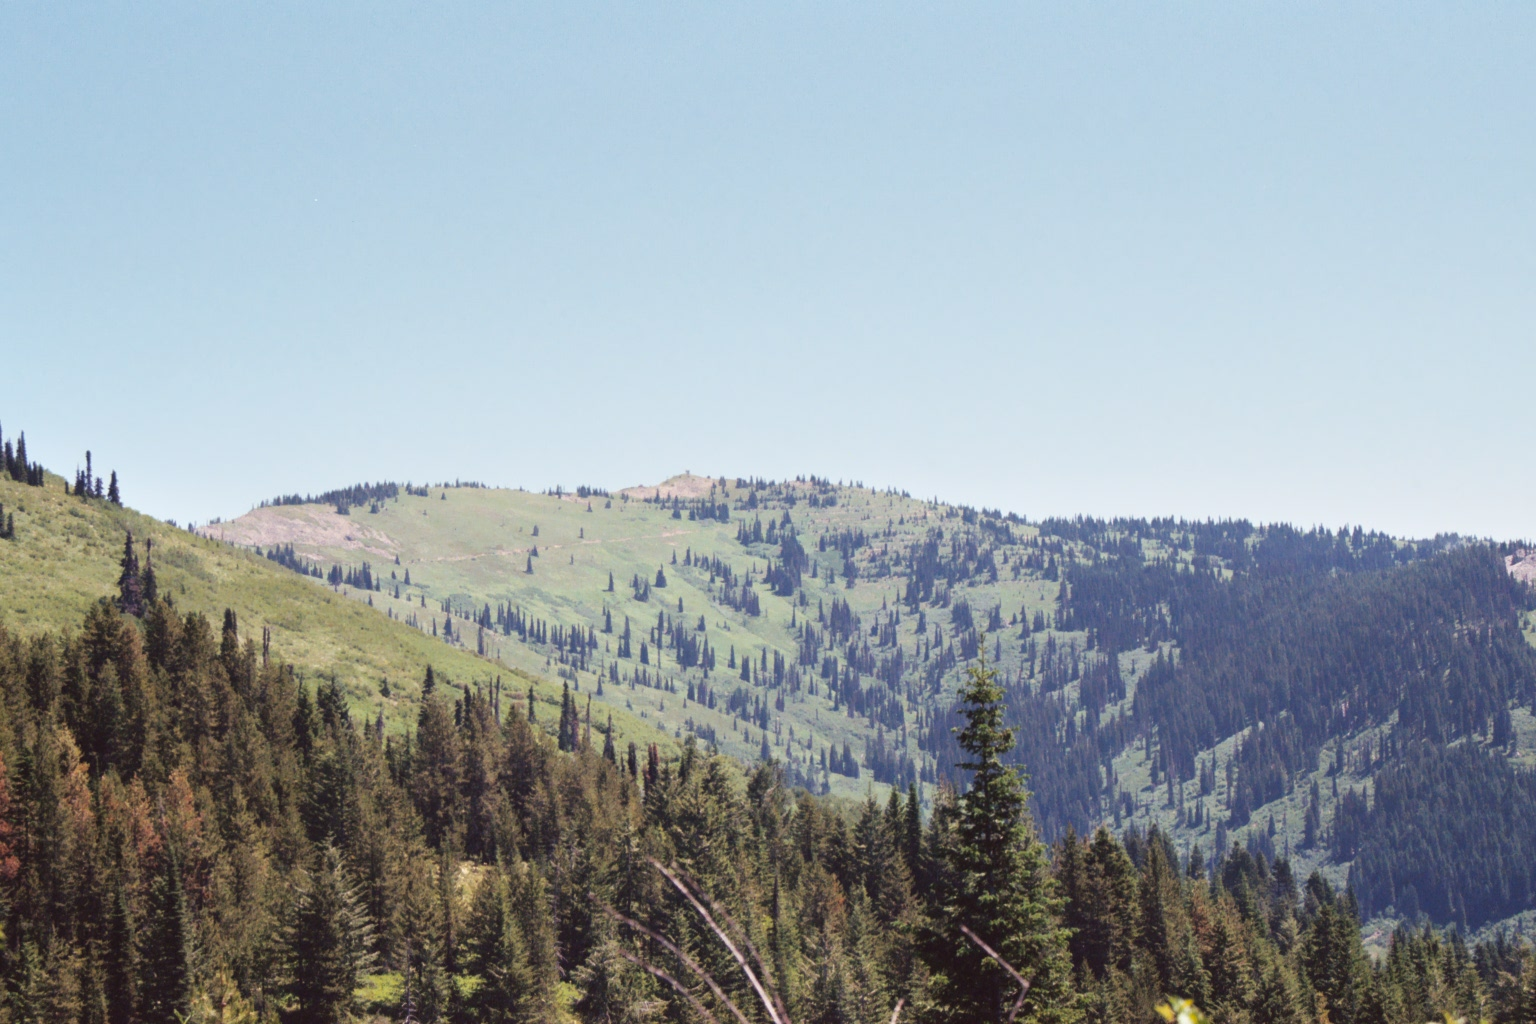 This is the high point of Coolwater Ridge, which is the westernmost high point of the Lochsa/Selway divide. Its not real high at 6,929 feet, but its got a respectable 1,129 feet of prominence and rises over a mile from the valley bottoms it divides. July 2007 Mike Hays Photo